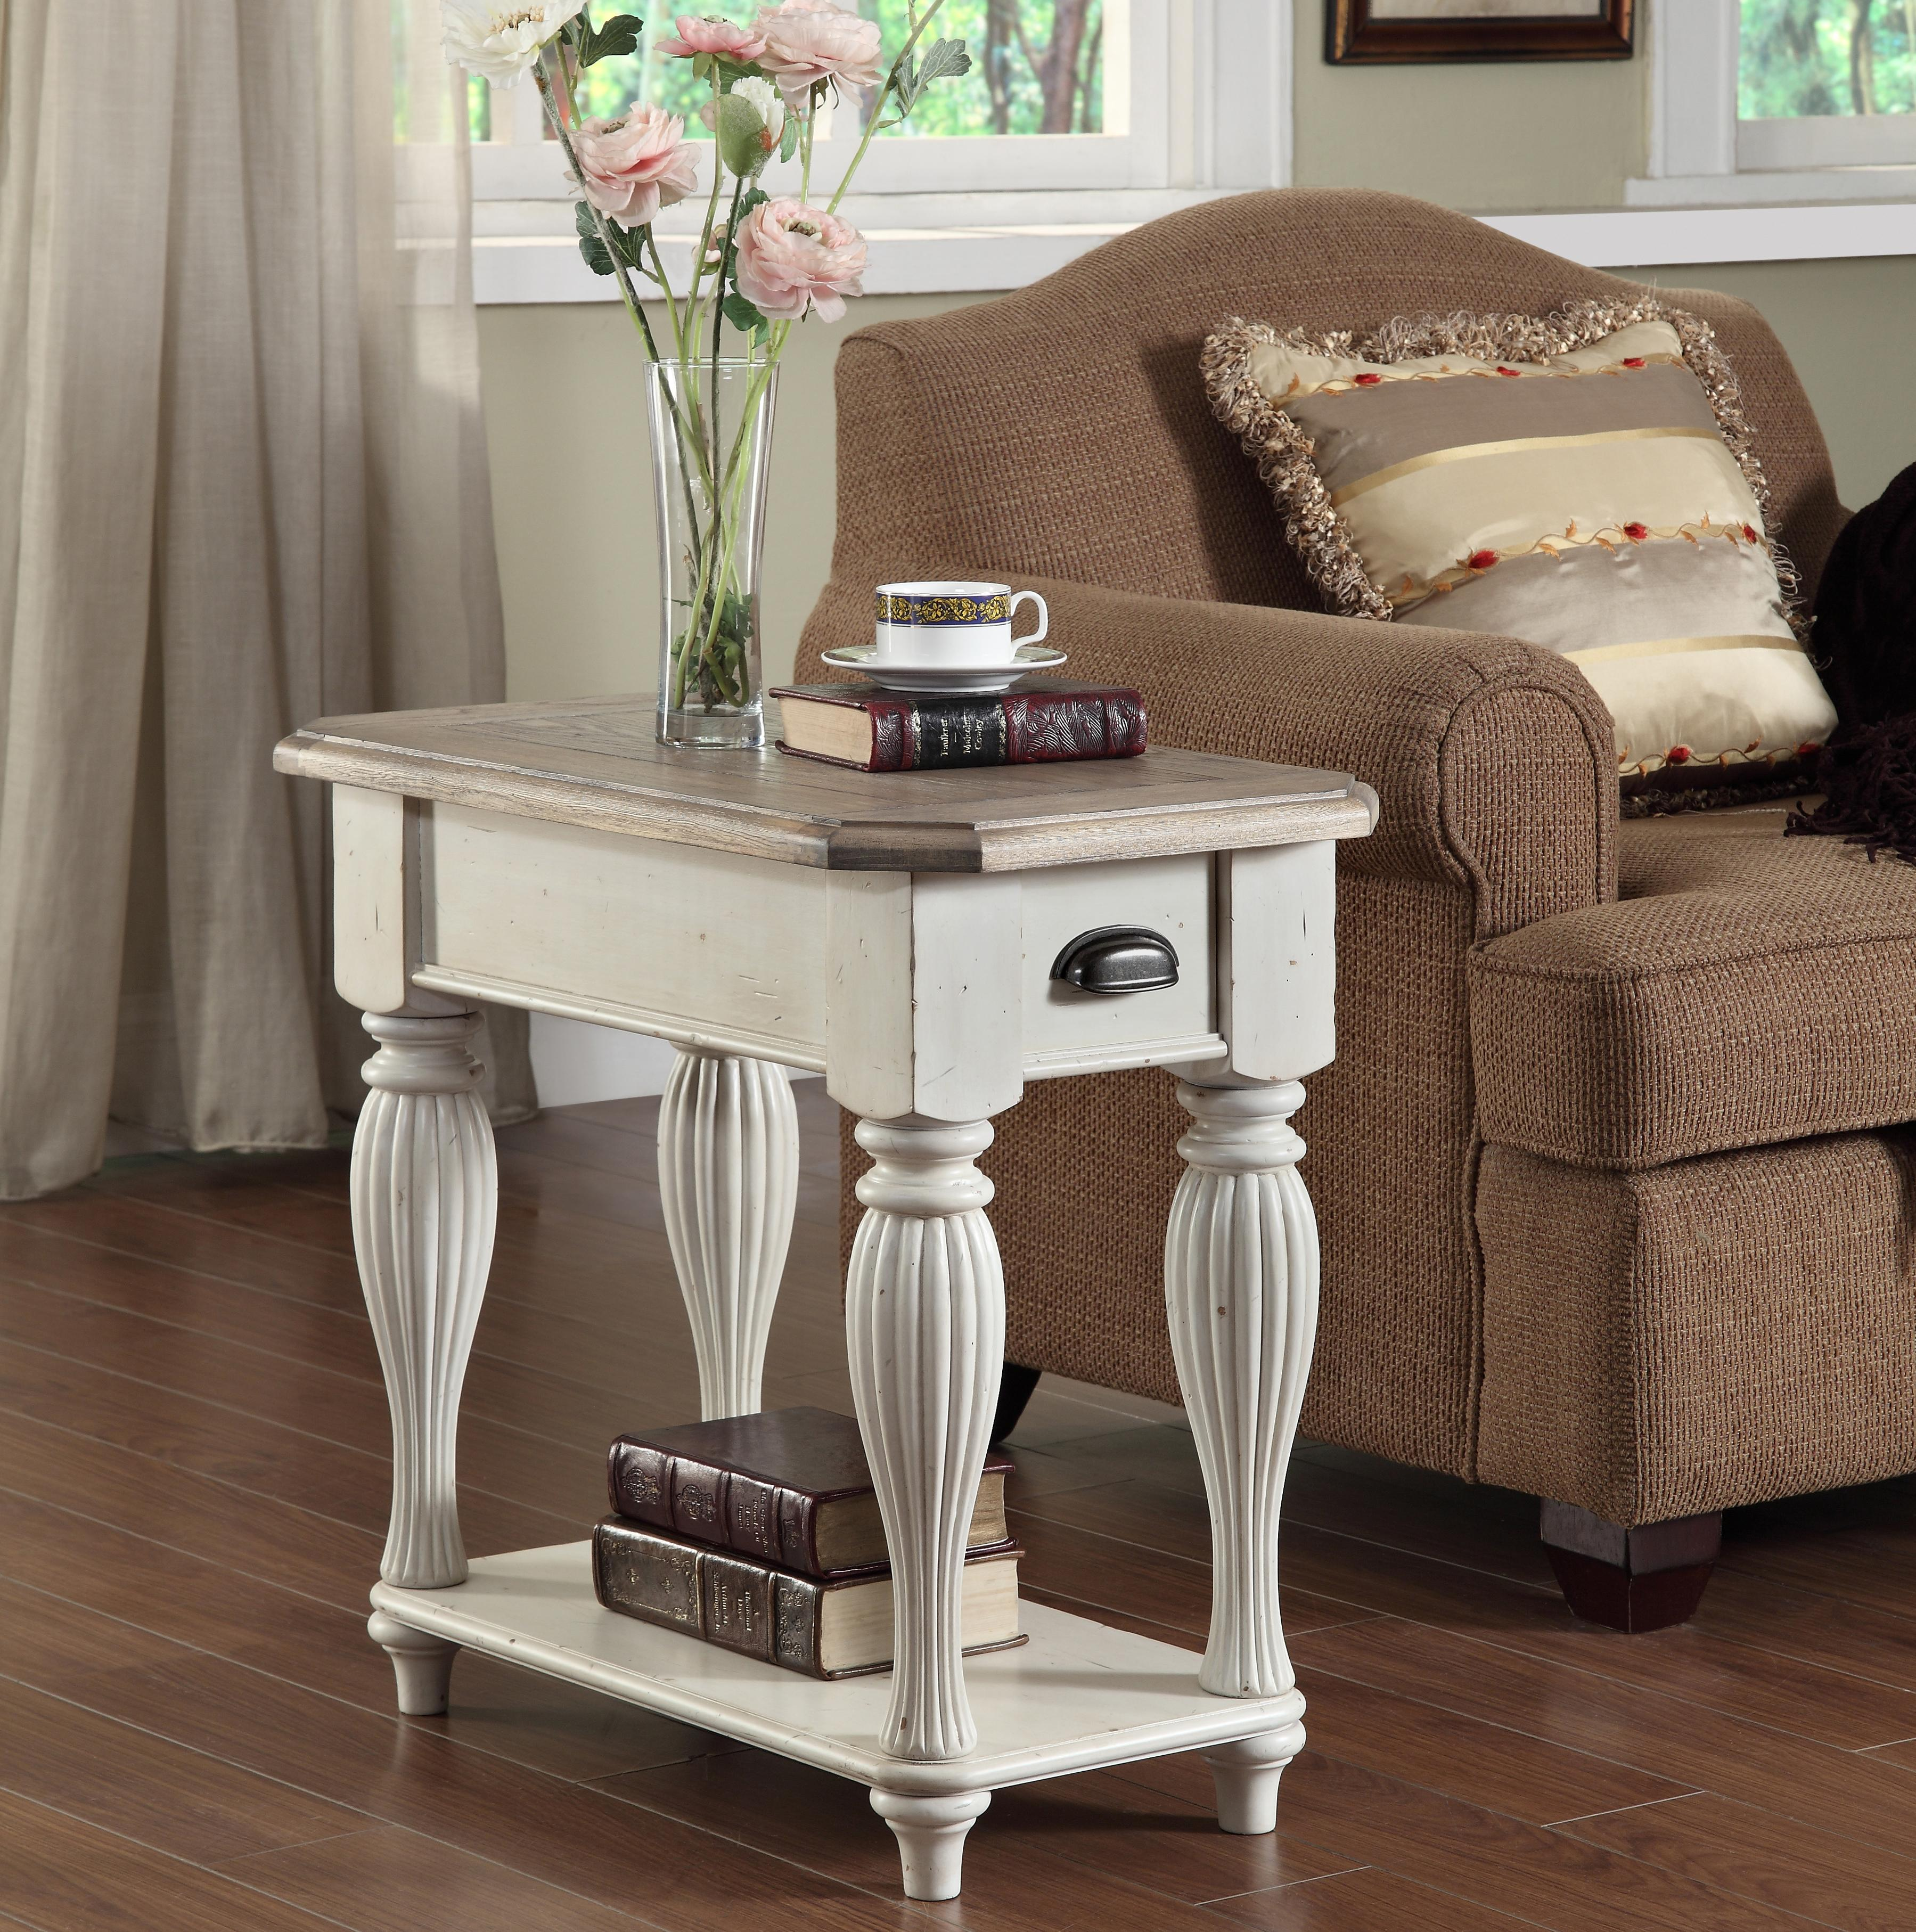 Chairside Table With Fixed Bottom Shelf By Riverside